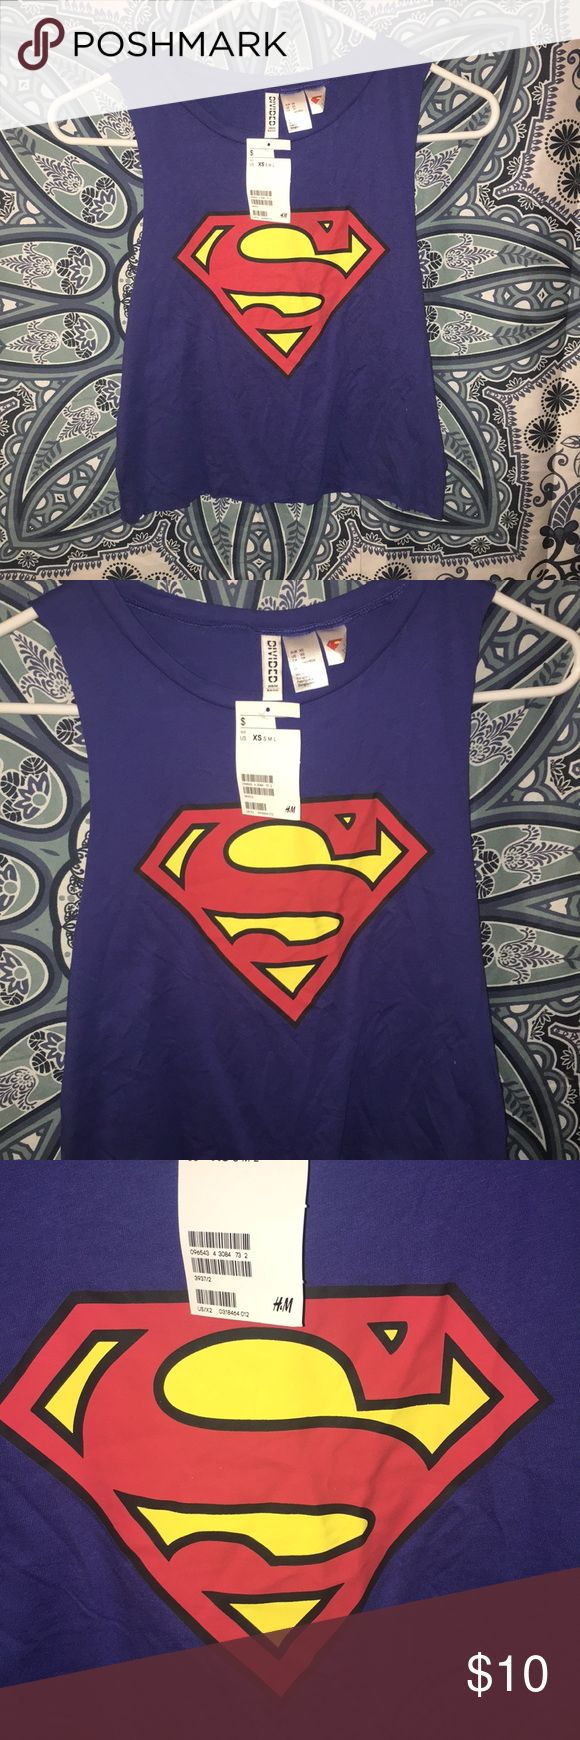 NWT H&M DIVIDED Superman tank top size XS H&M Divided tank crop top. Size XS.  Brand NWT Divided Tops Muscle Tees